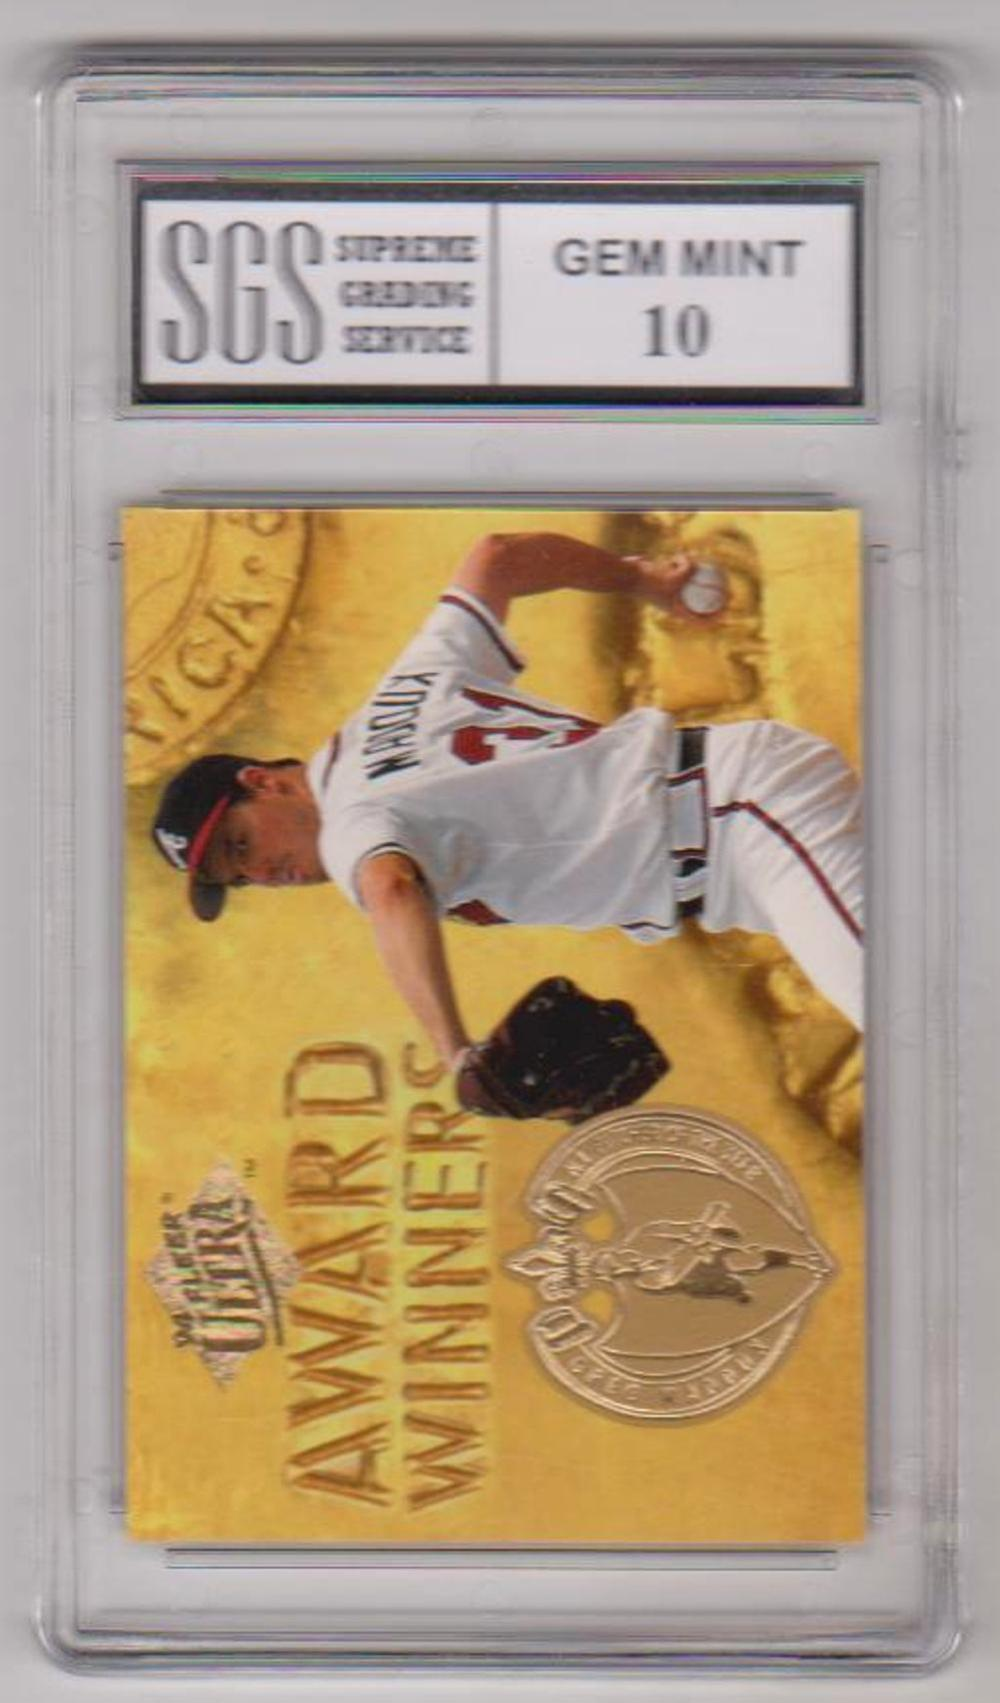 Graded Gem Mint 10 Greg Maddux 1994 Fleer Ultra Award Winners #23 Insert Card